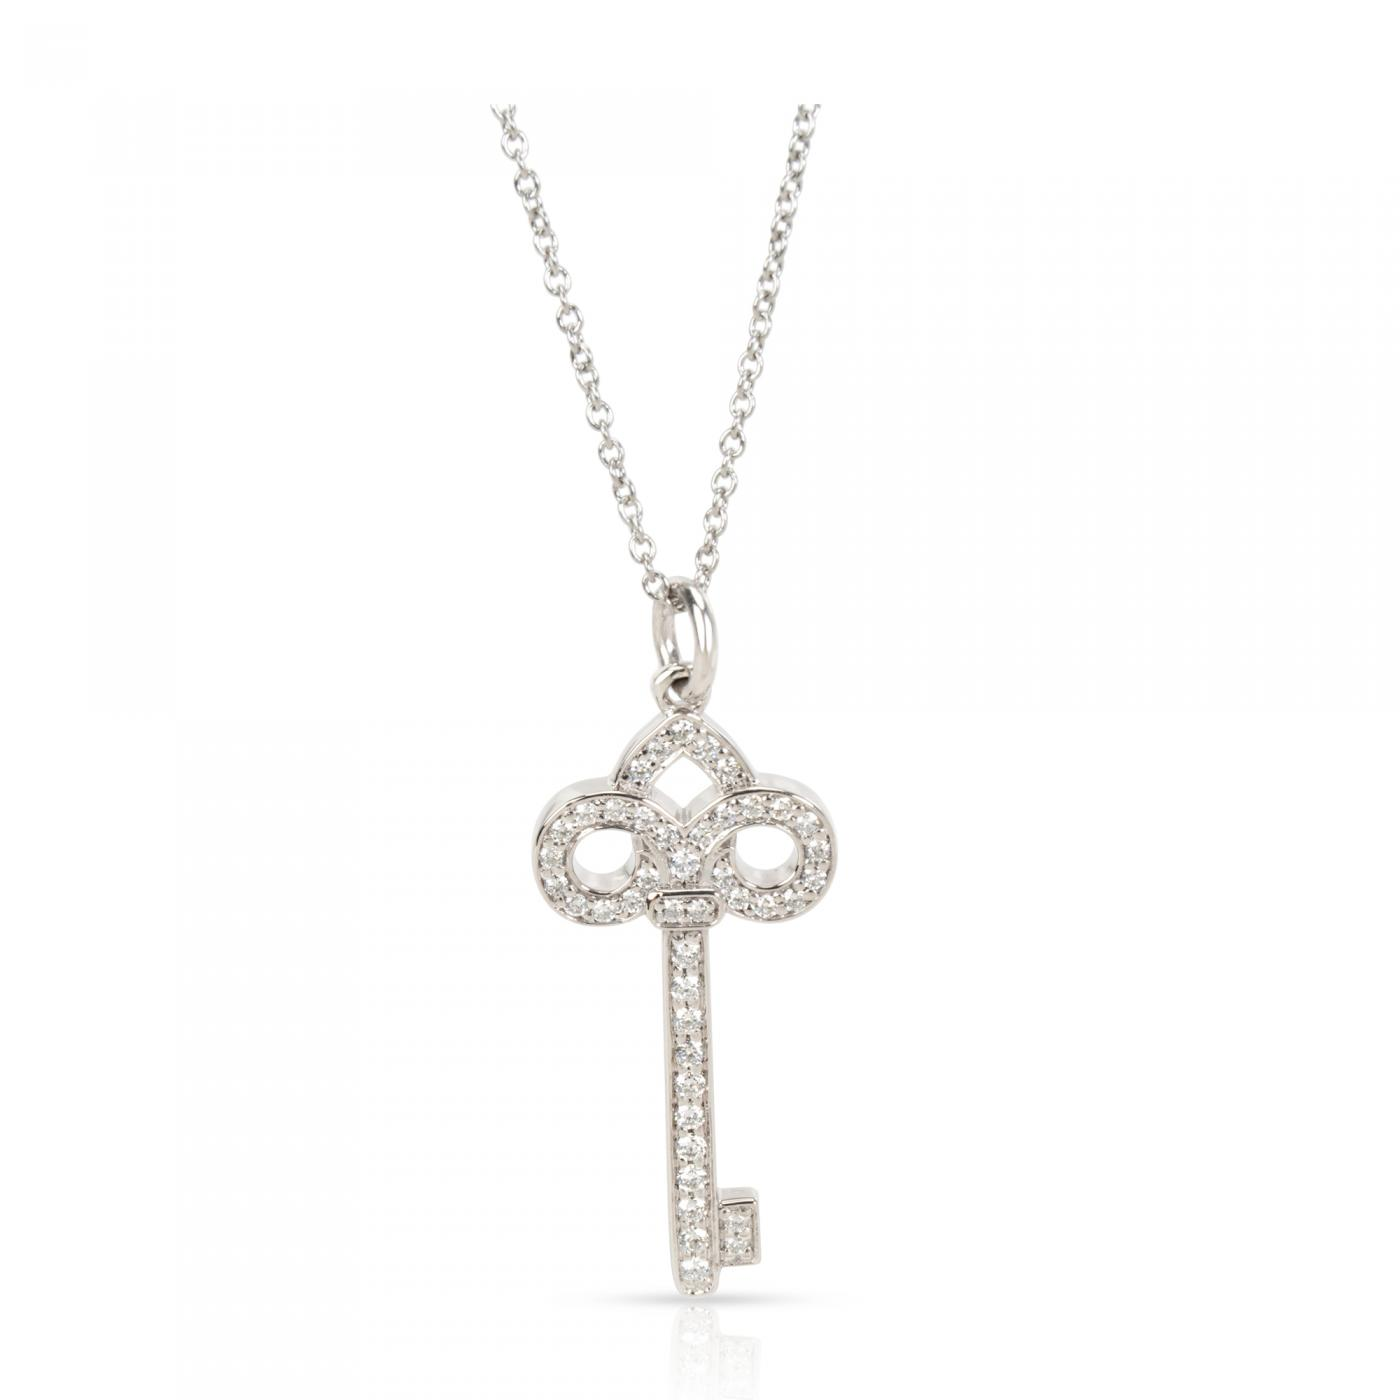 Tiffany And Co Tiffany Co Fleur De Lis Diamond Key Pendant Necklace In Platinum 0 12 Ctw